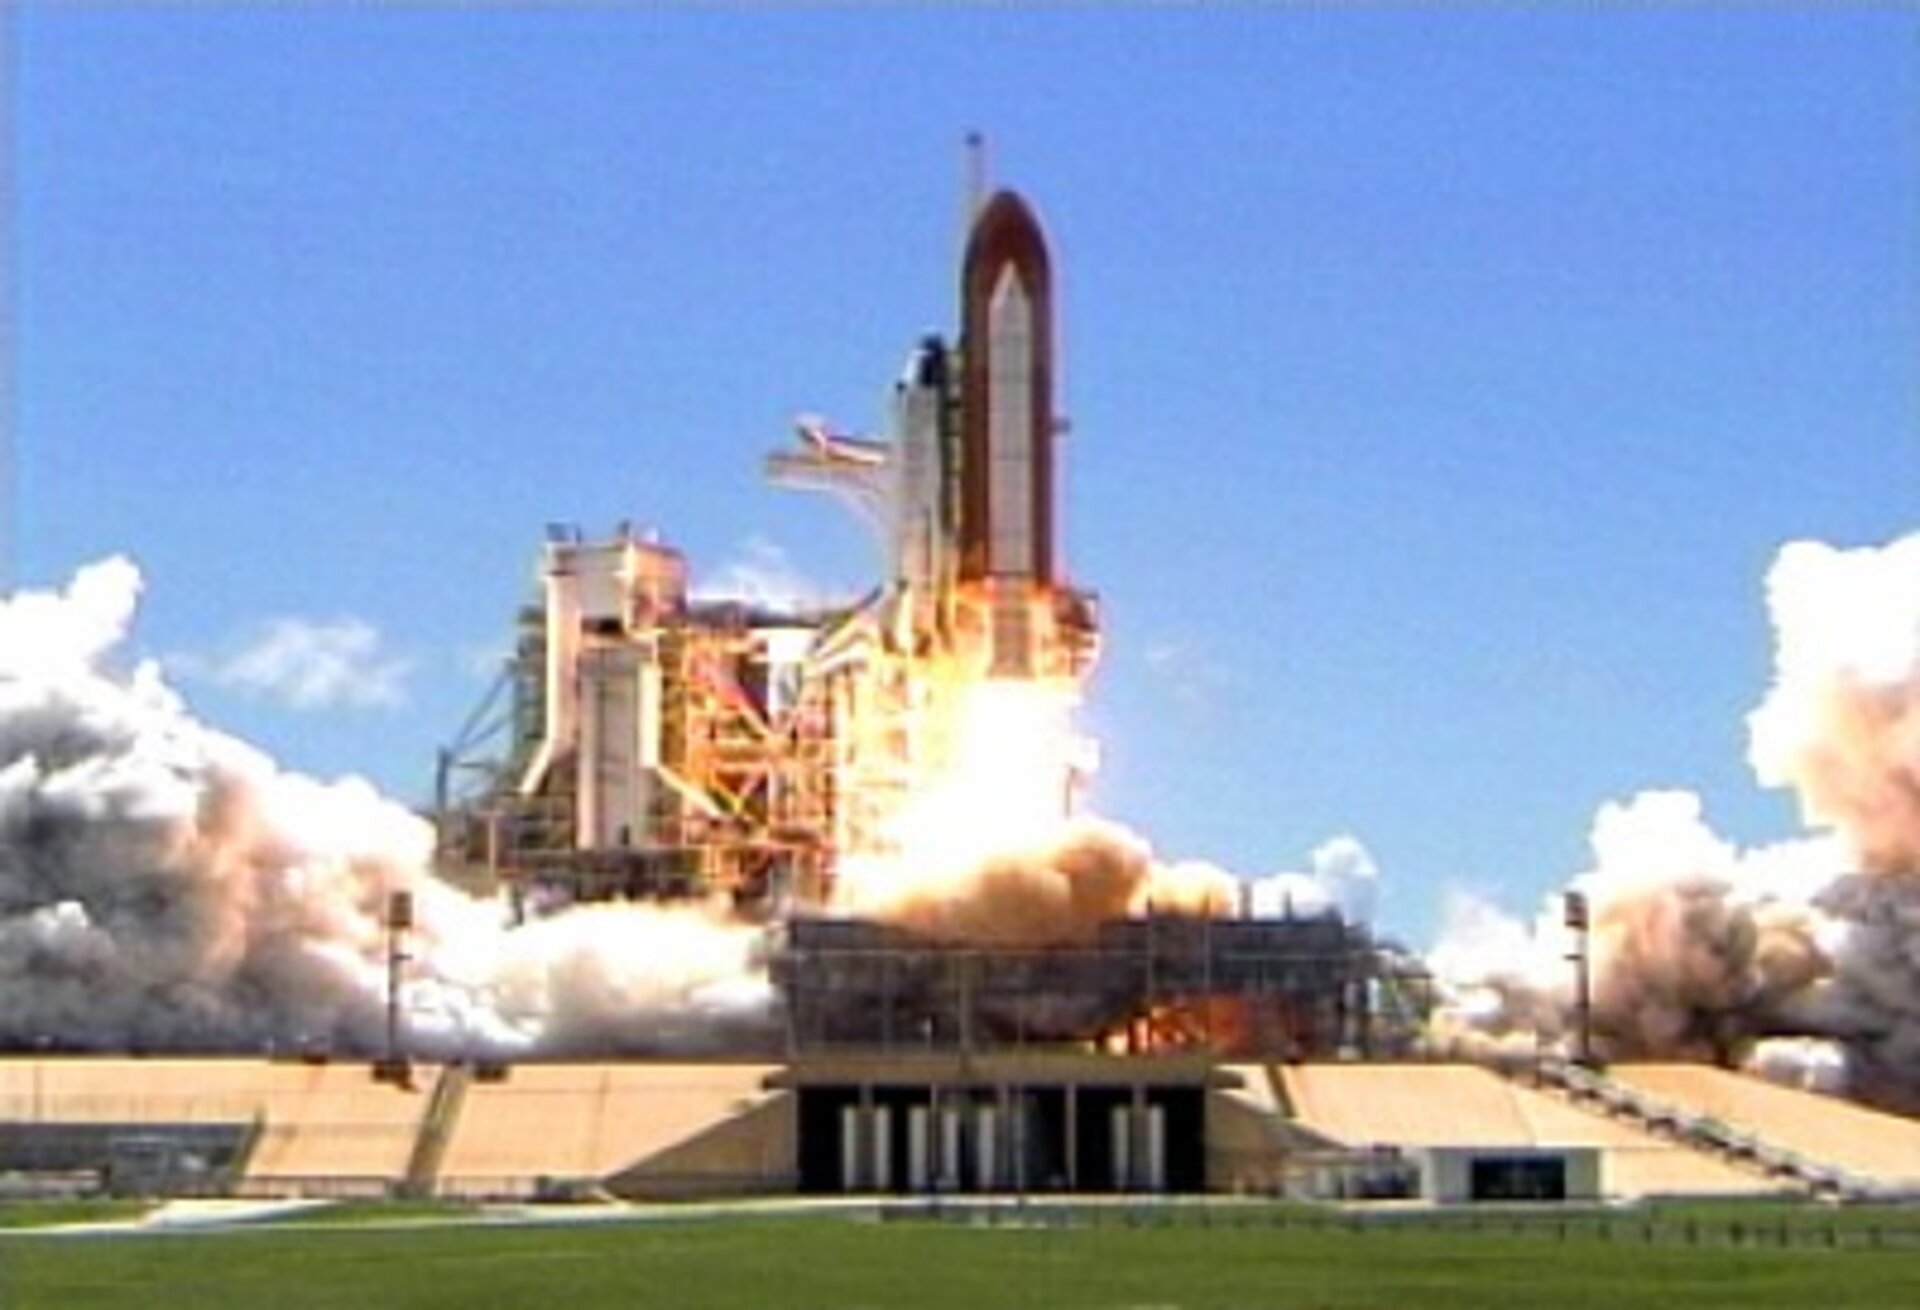 Successful launch of Space Shuttle Discovery